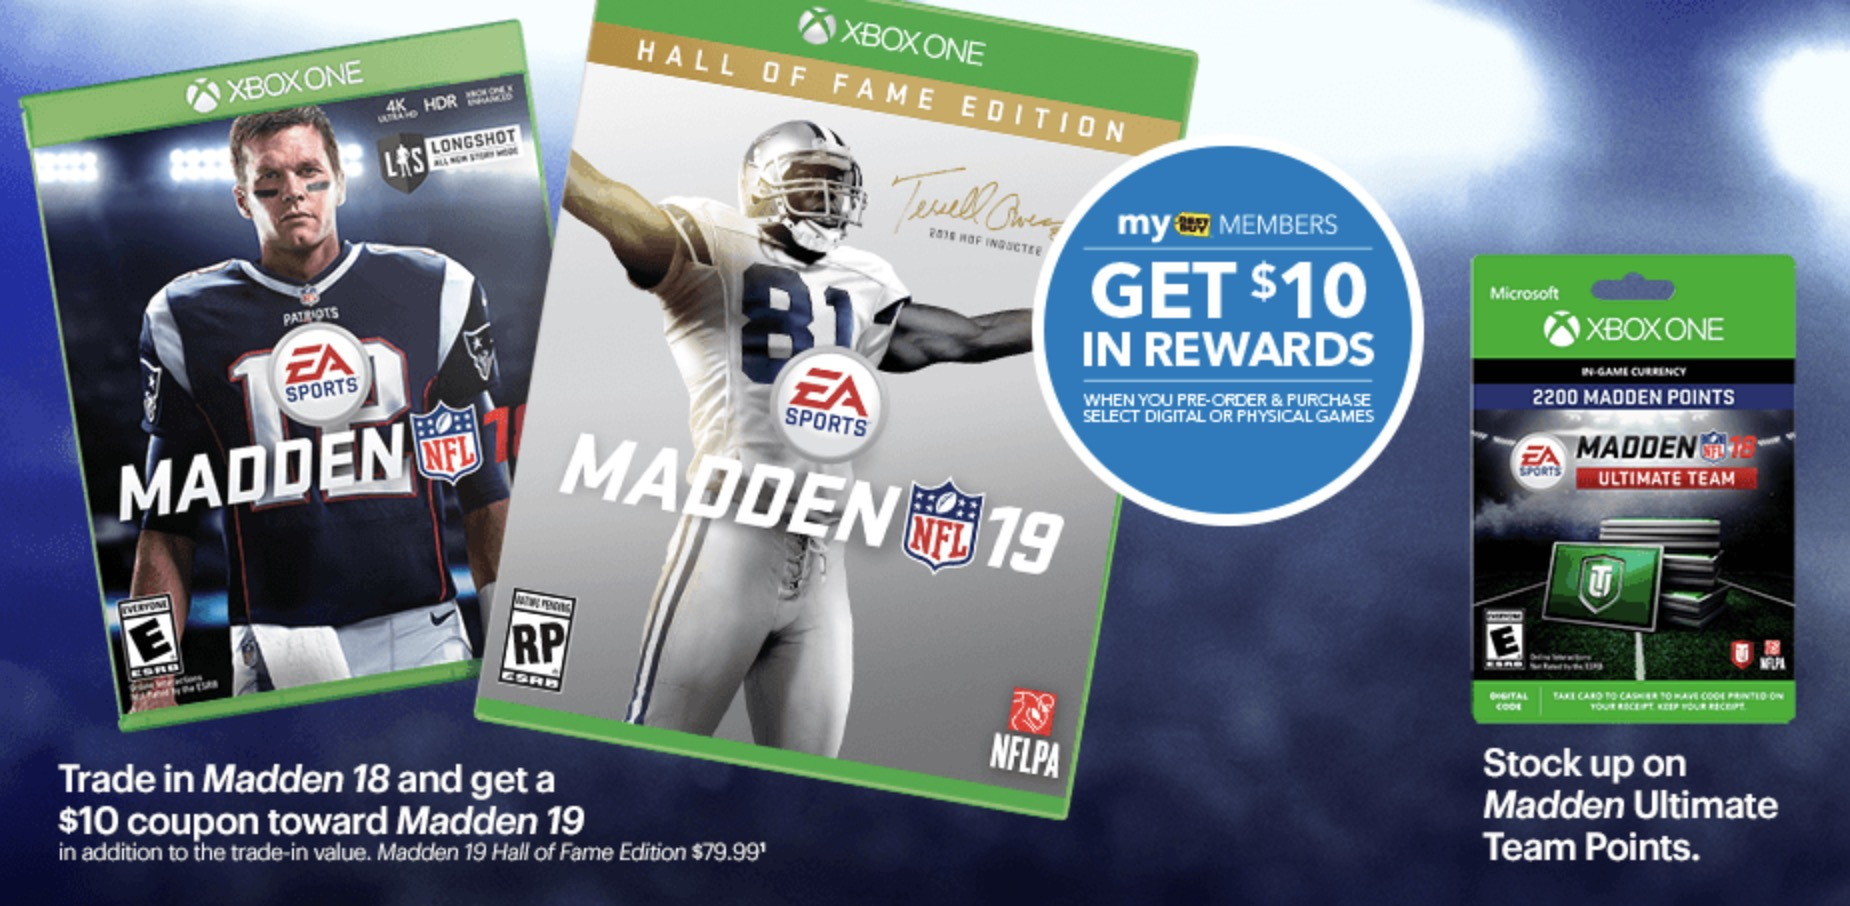 Epic Madden 19 Deal Cuts Price to $16